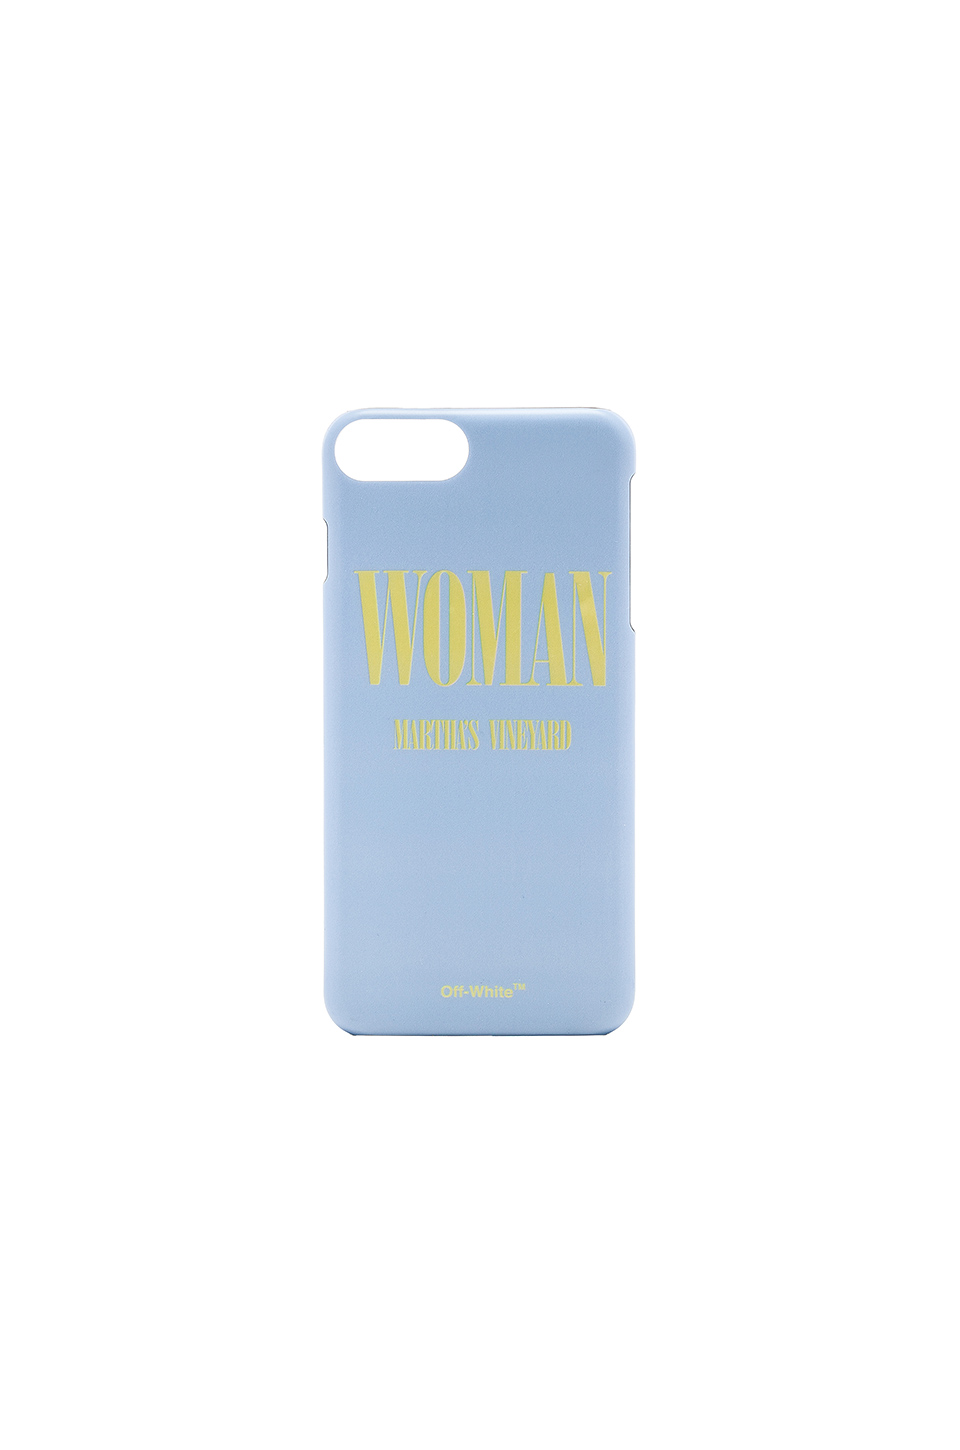 OFF-WHITE Martha's Vineyard iPhone 7/8 Plus Cover in Light Blue